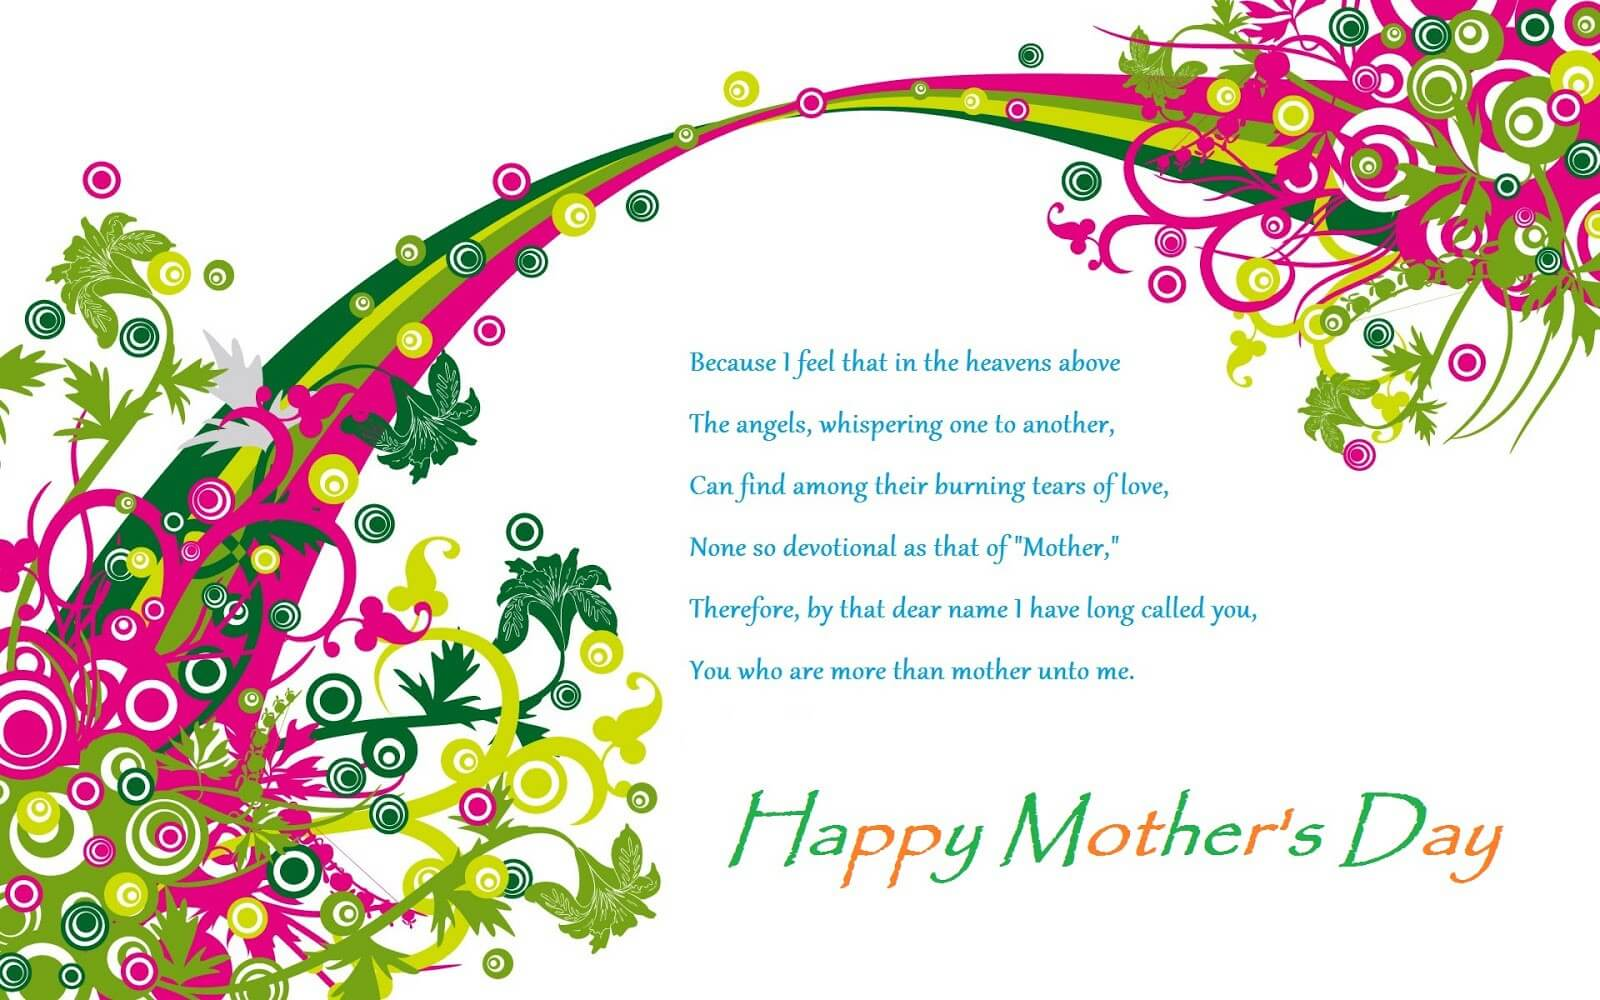 happy mothers day poet wishes greetings hd wallpaper